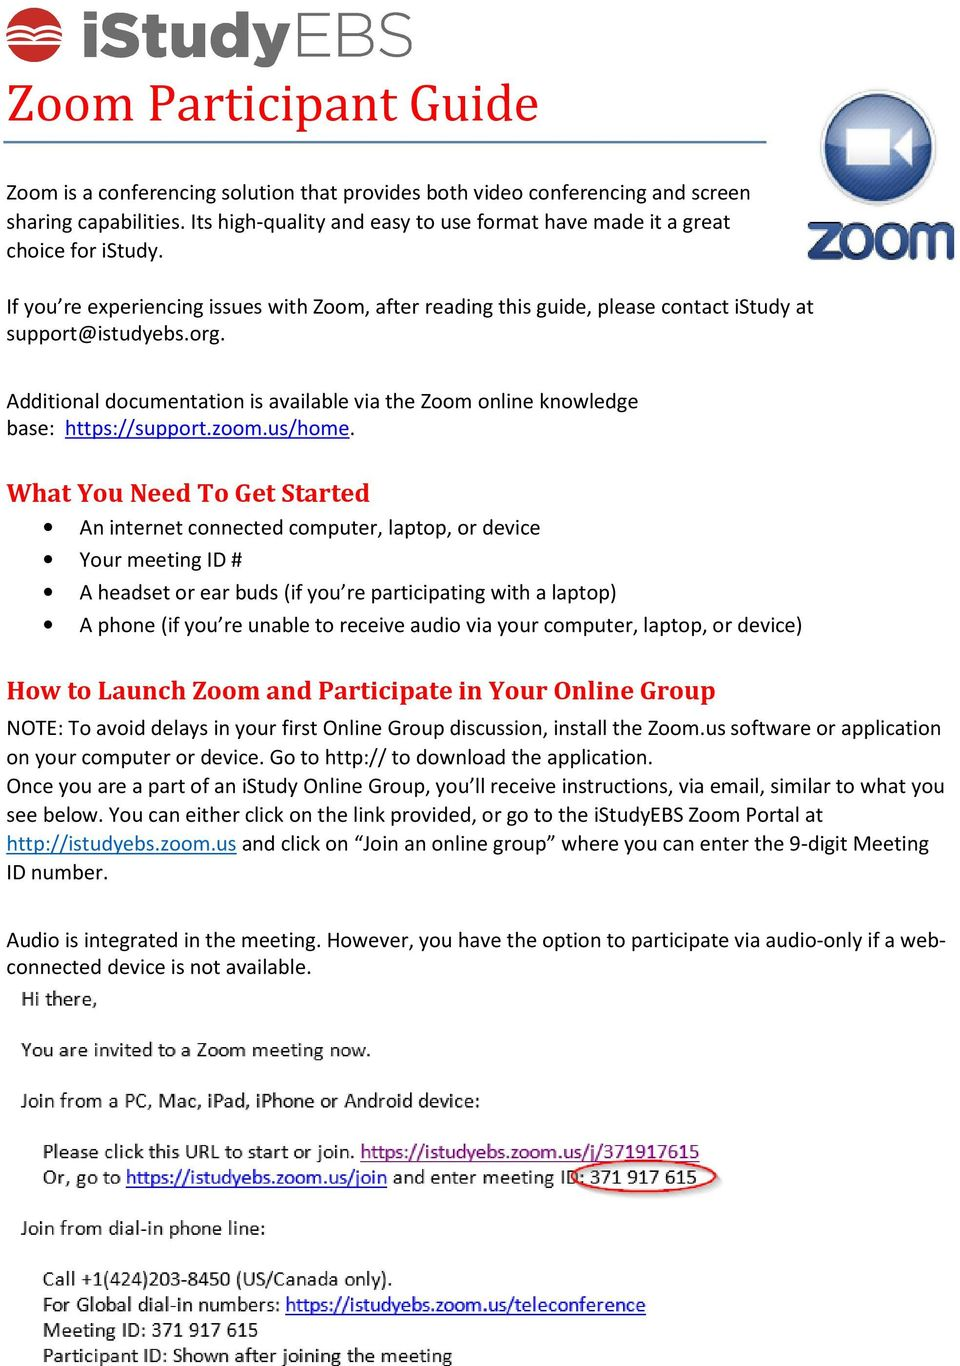 Additional documentation is available via the Zoom online knowledge base: https://support.zoom.us/home.